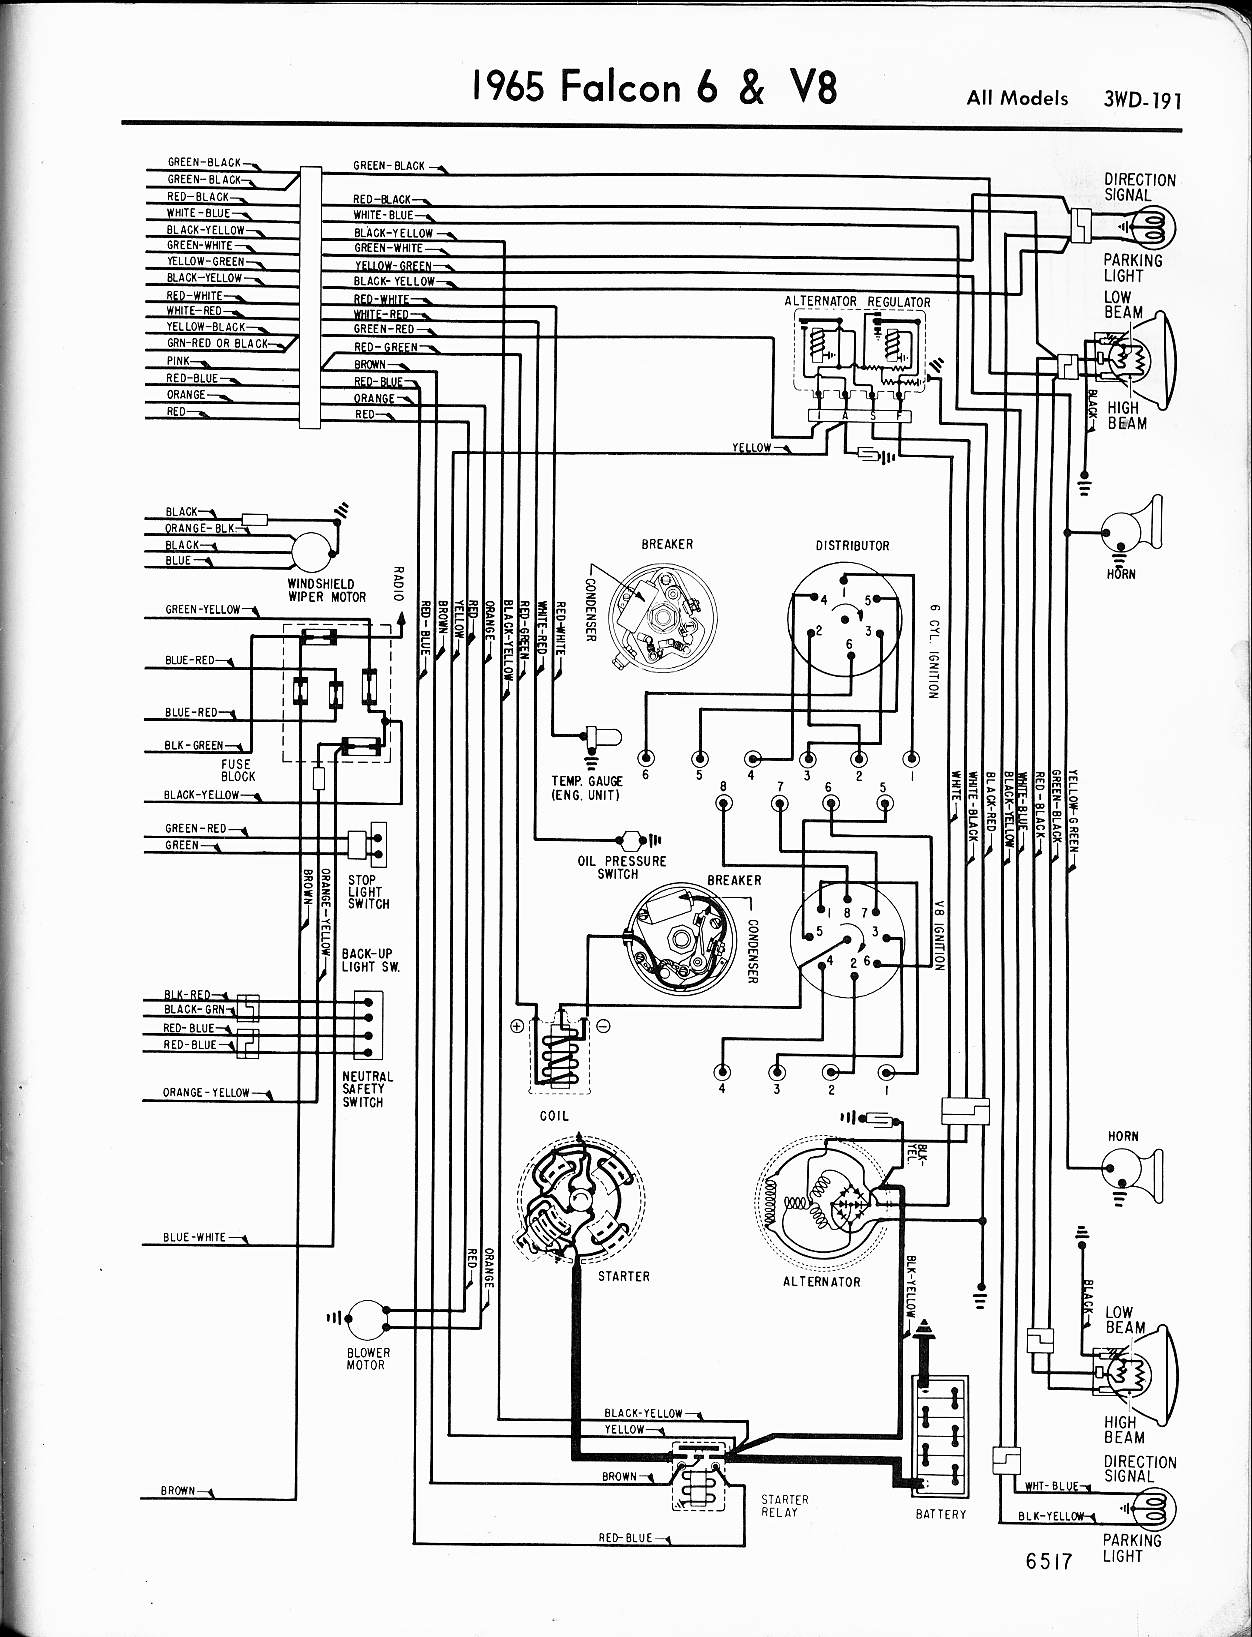 81a3 ford galaxie 500 wiring diagram | wiring library  wiring library